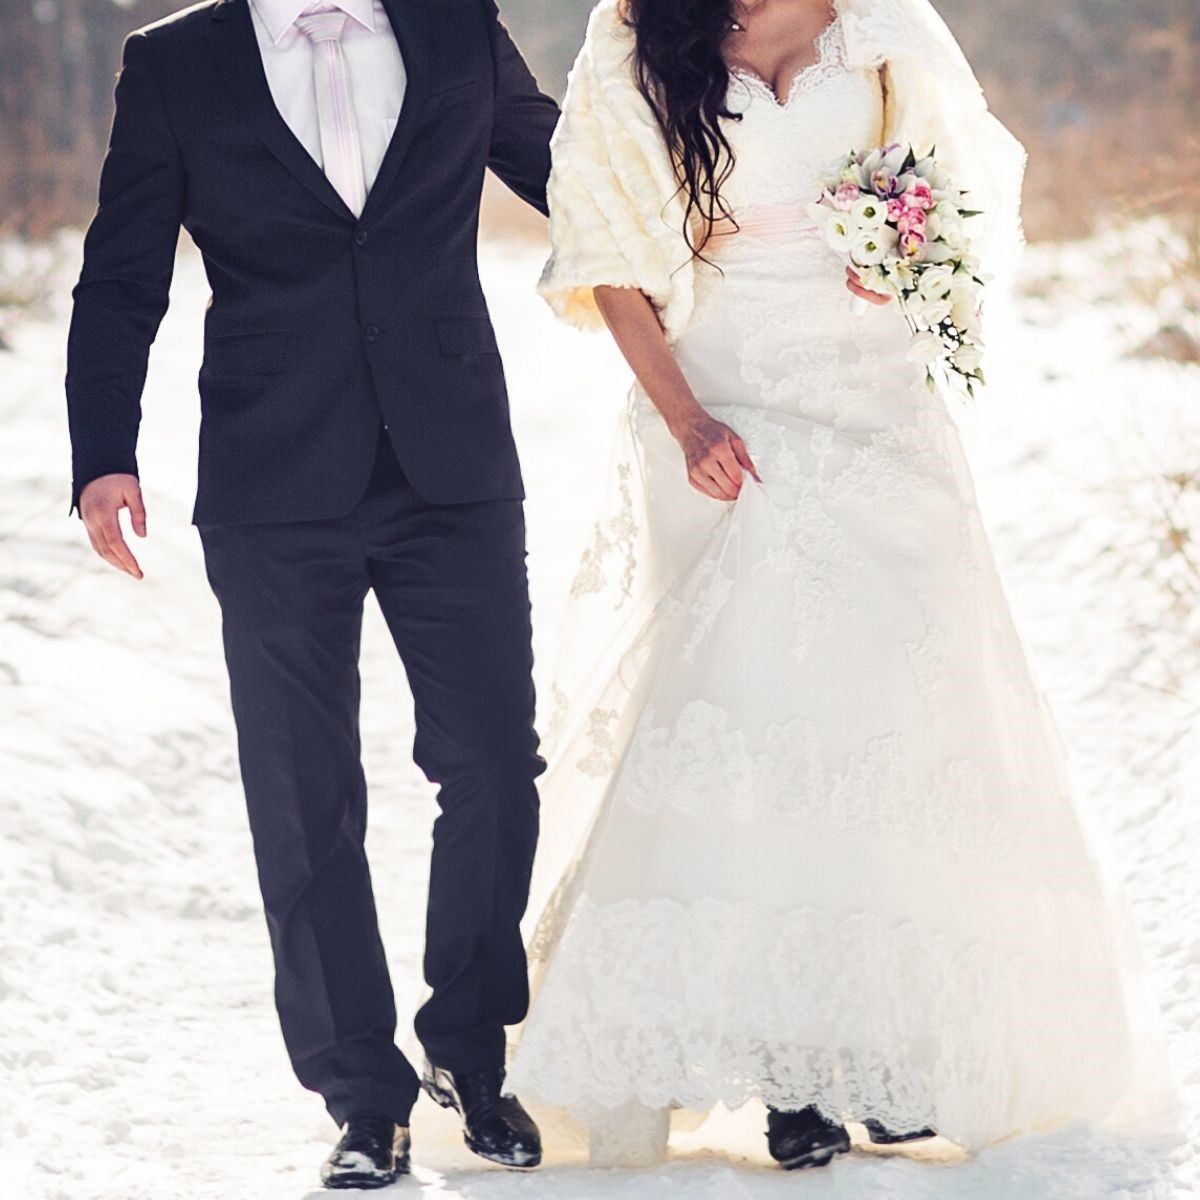 3 Tips for Throwing a Unique Winter Wedding